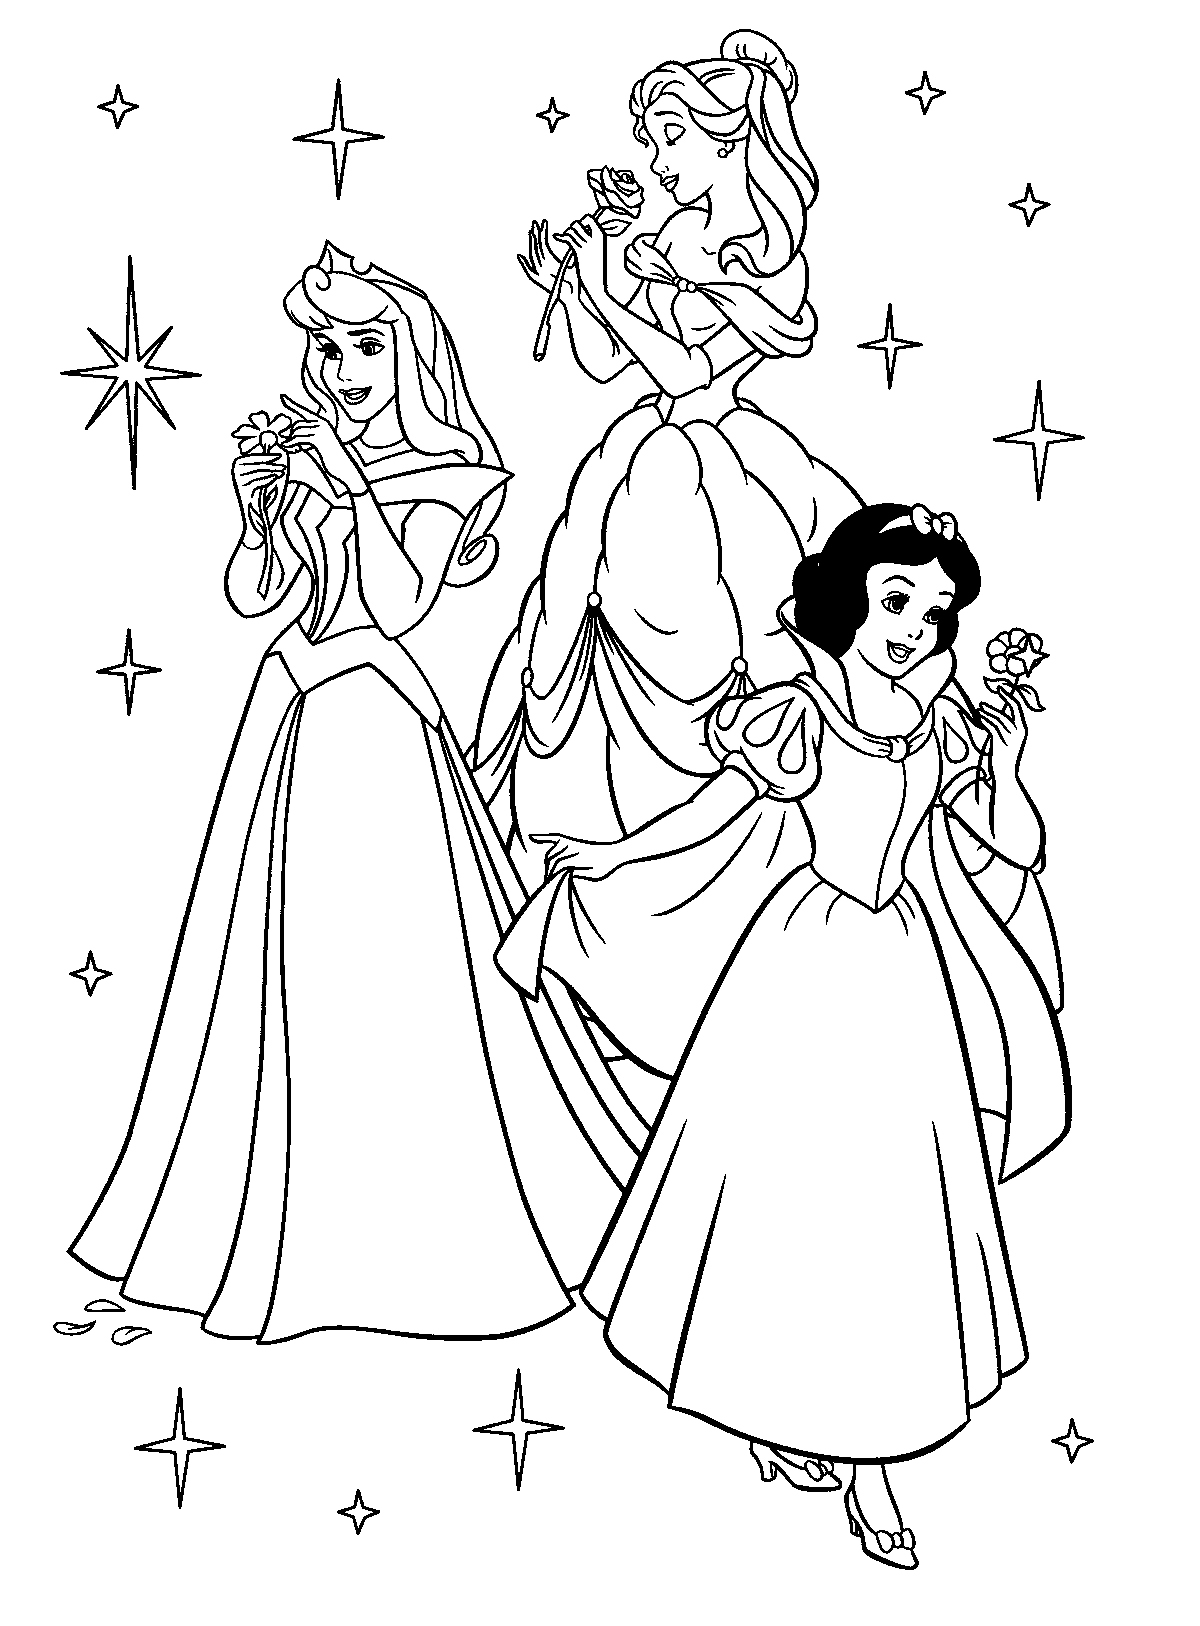 Princess Coloring Pages - Best Coloring Pages For Kids | free online coloring pages disney princesses